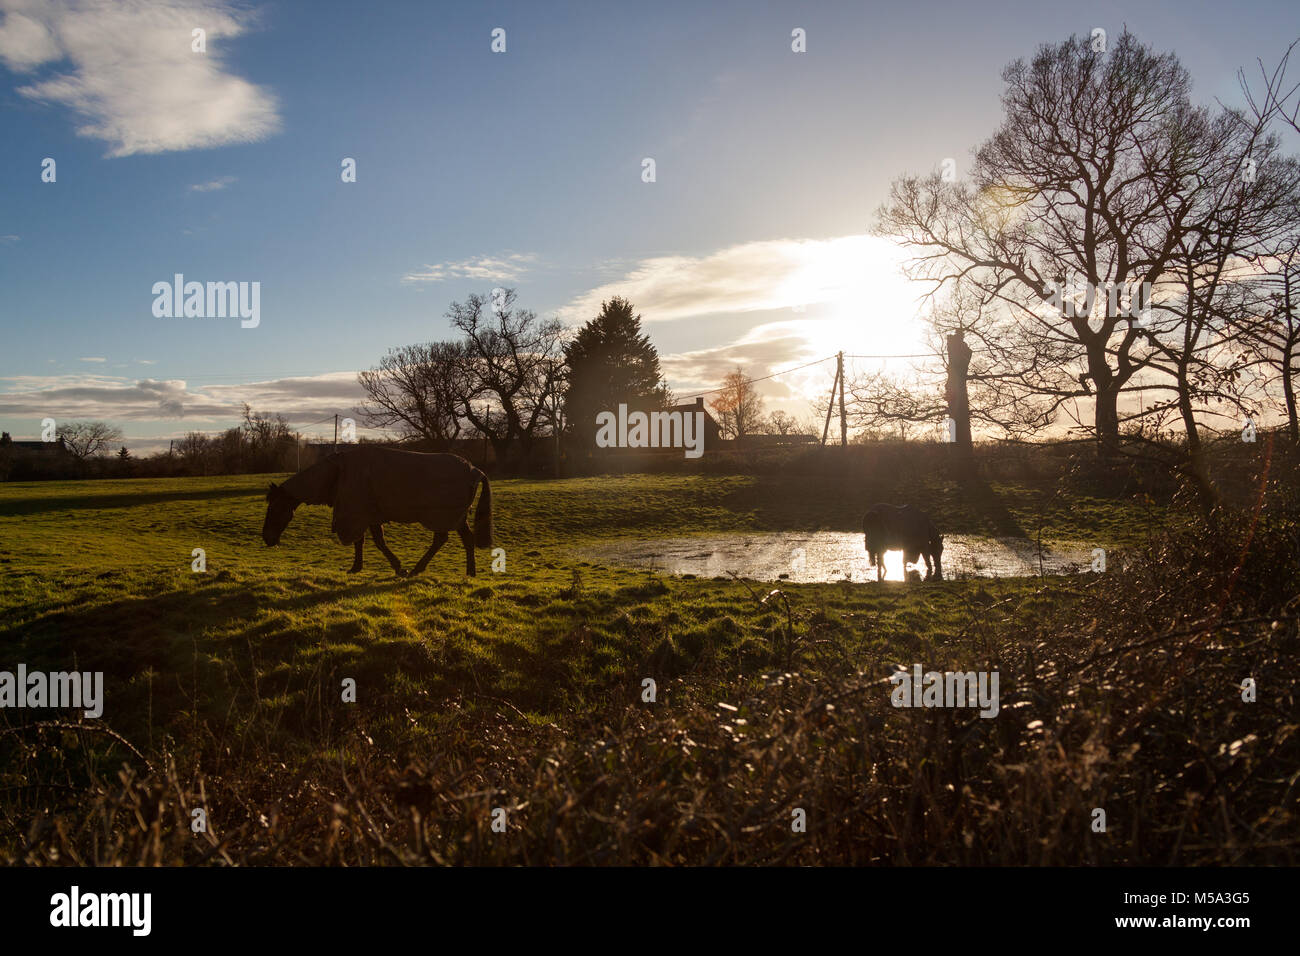 Village of Coddington, England. Silhouetted view of horses grazing in the Cheshire village of Coddington. - Stock Image